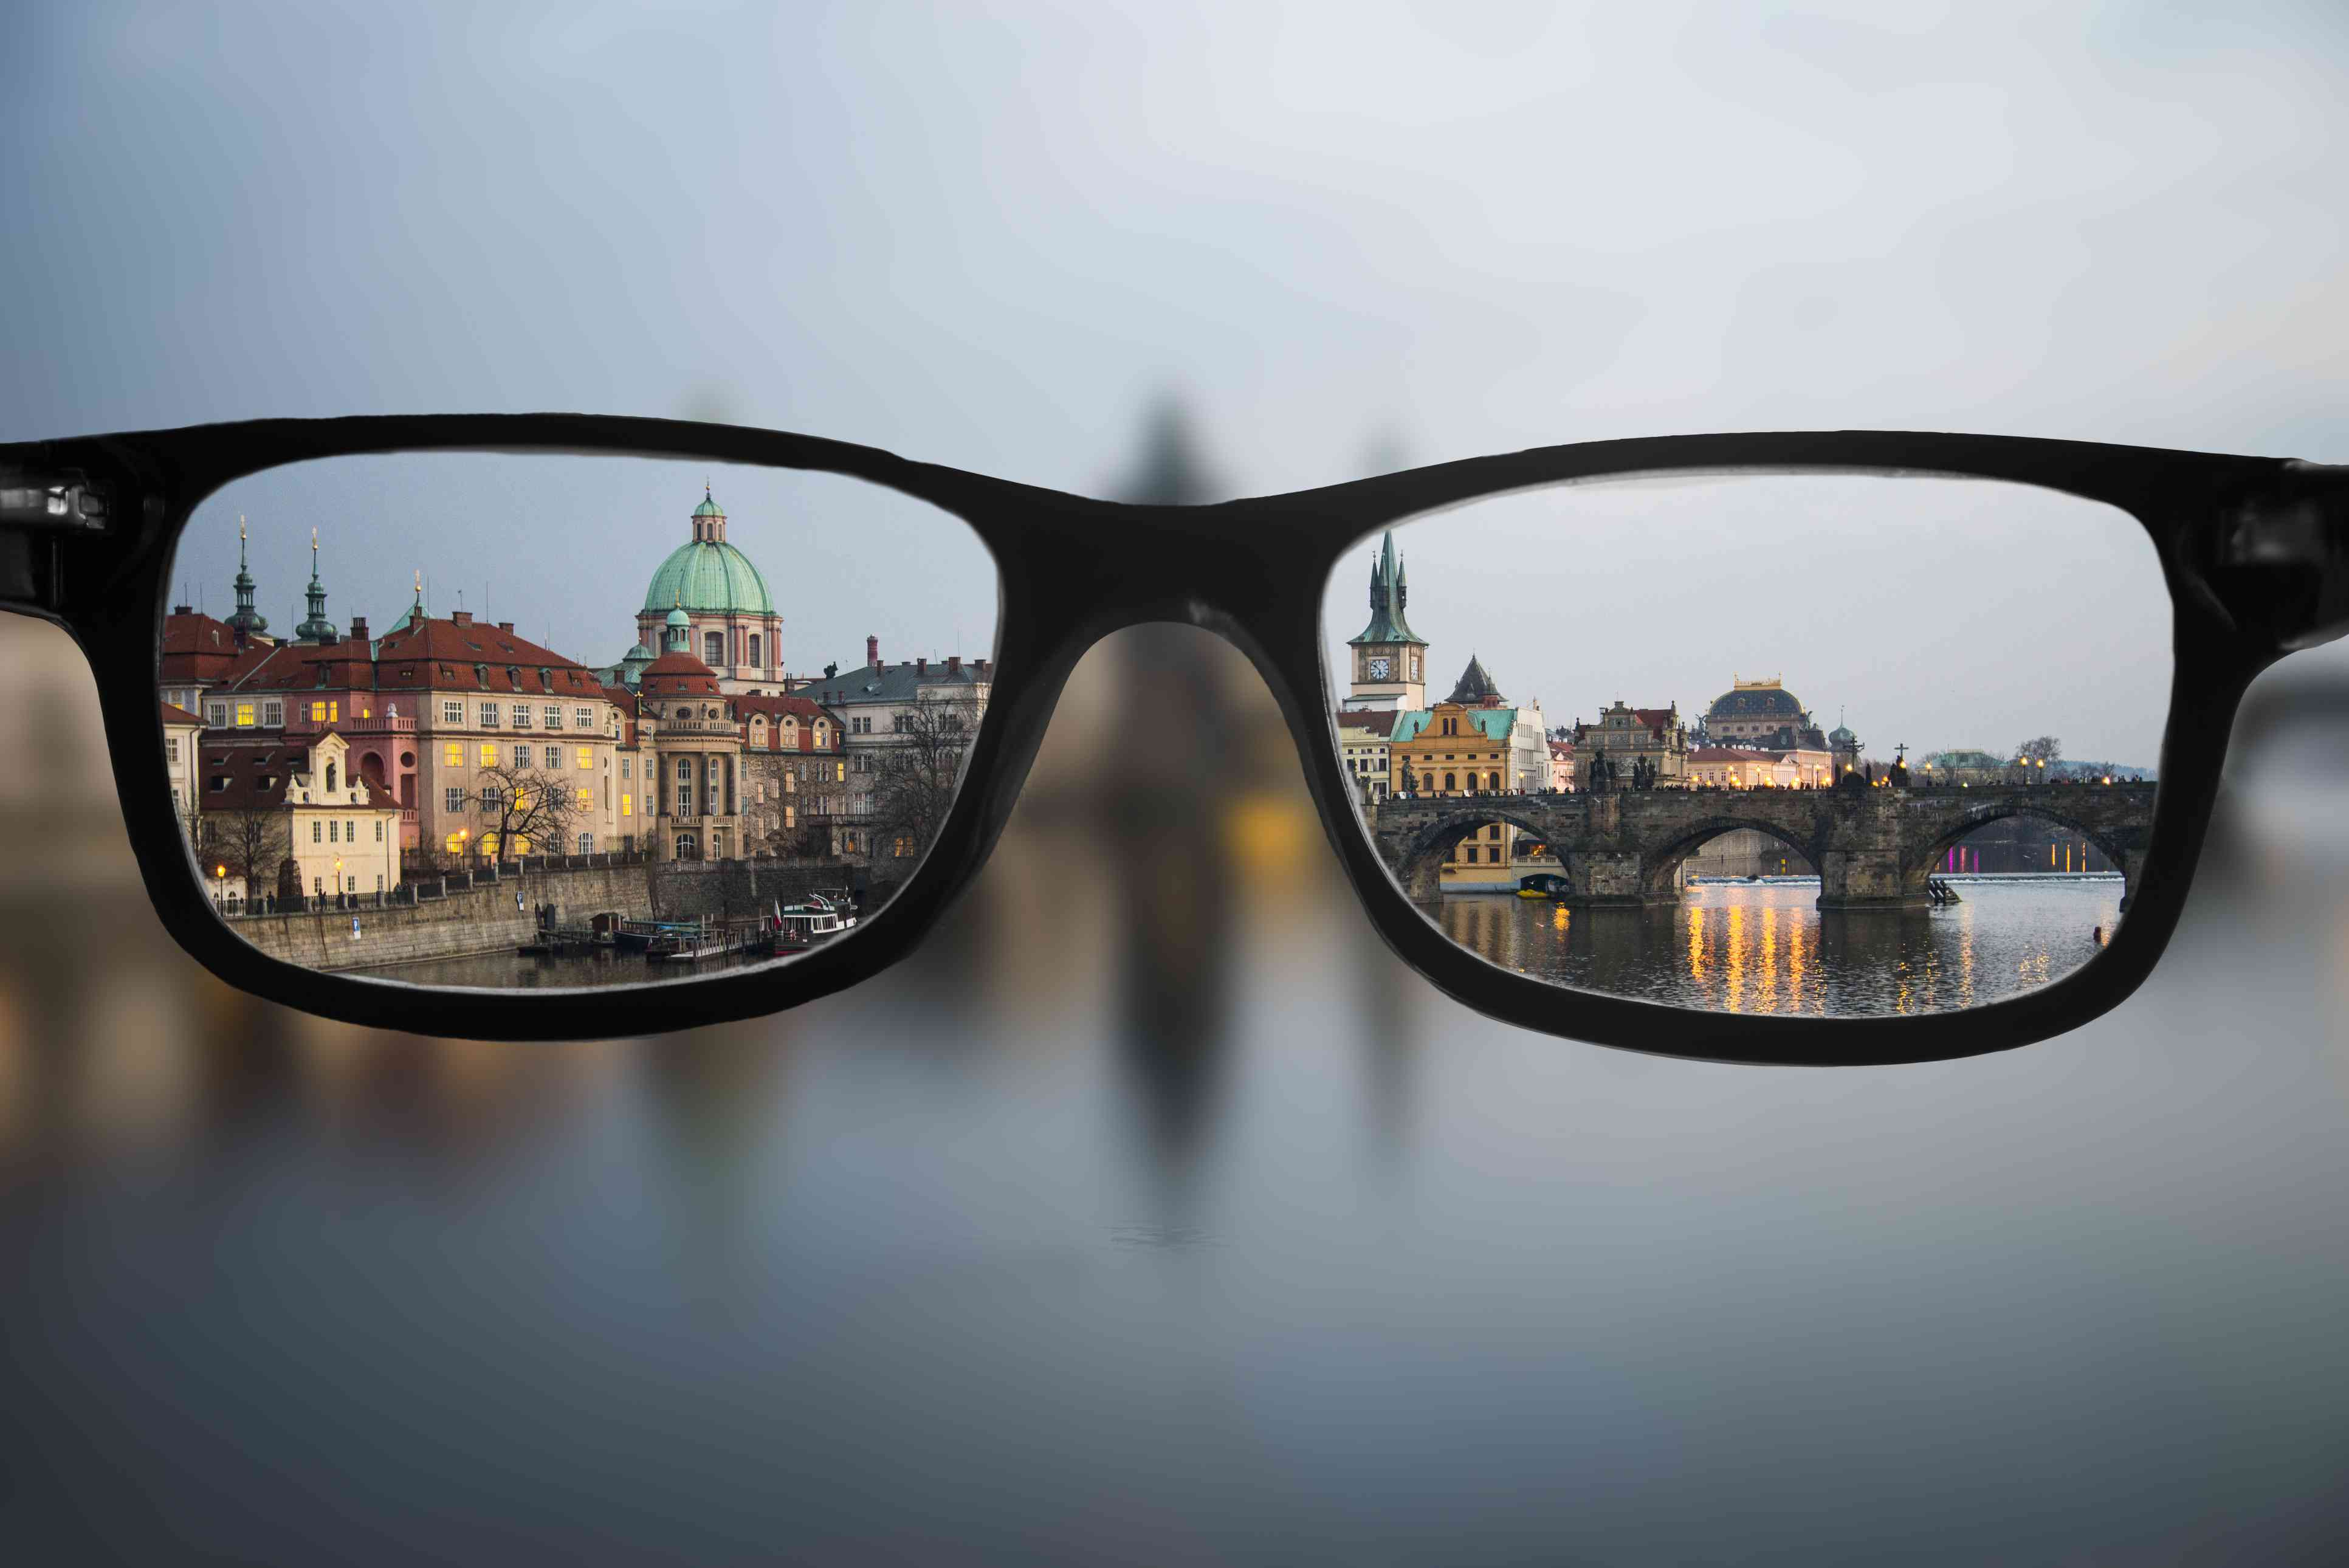 Point of view looking through a pair of eye glasses looking at a city skyline